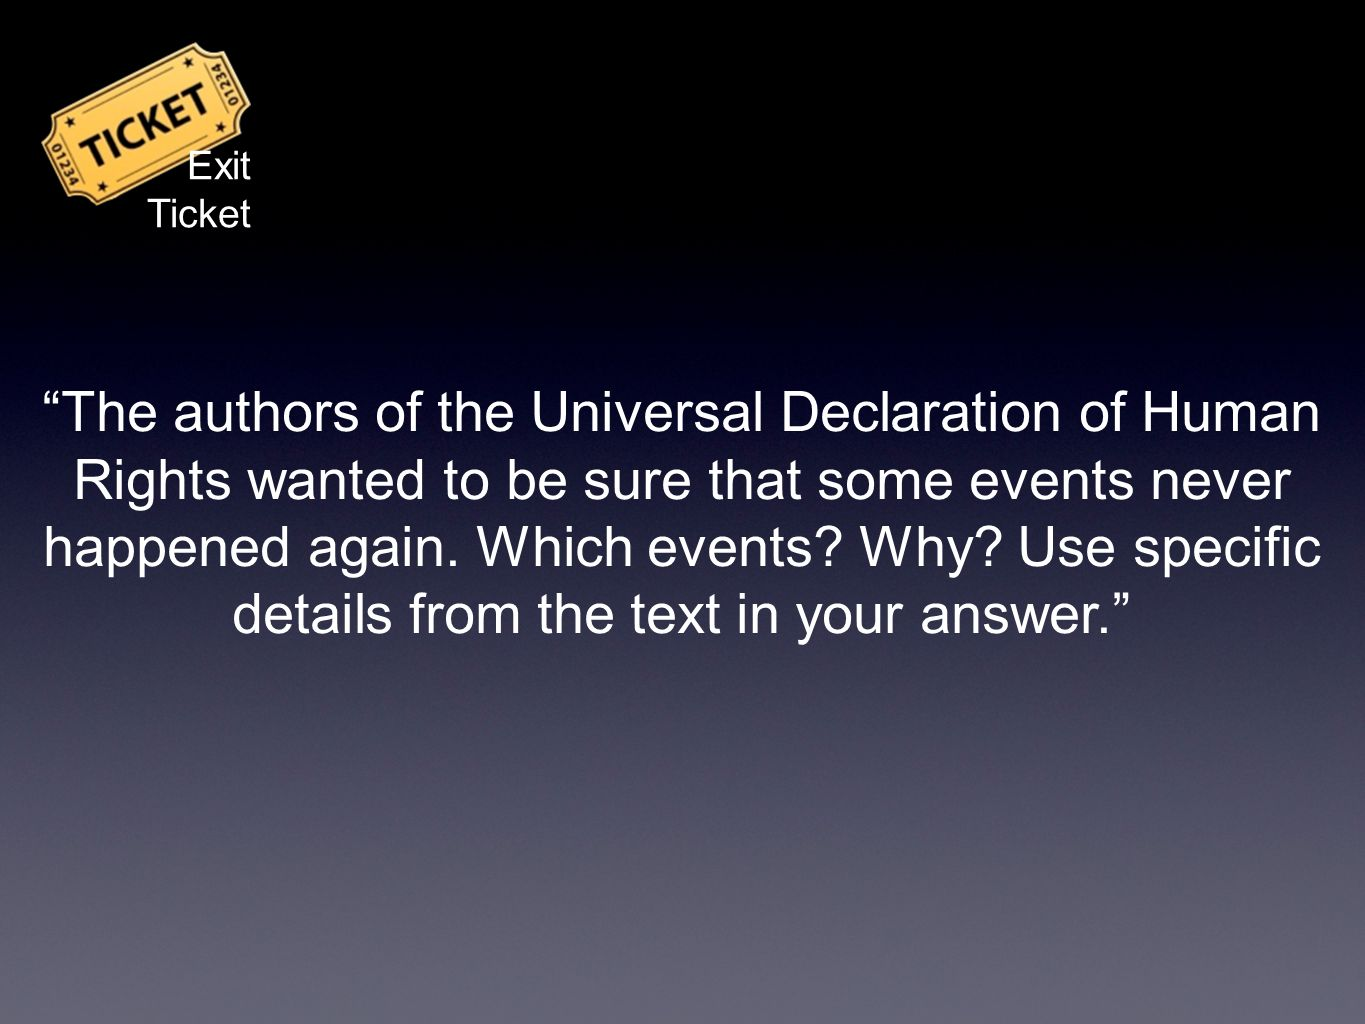 The authors of the Universal Declaration of Human Rights wanted to be sure that some events never happened again. Which events? Why? Use specific deta